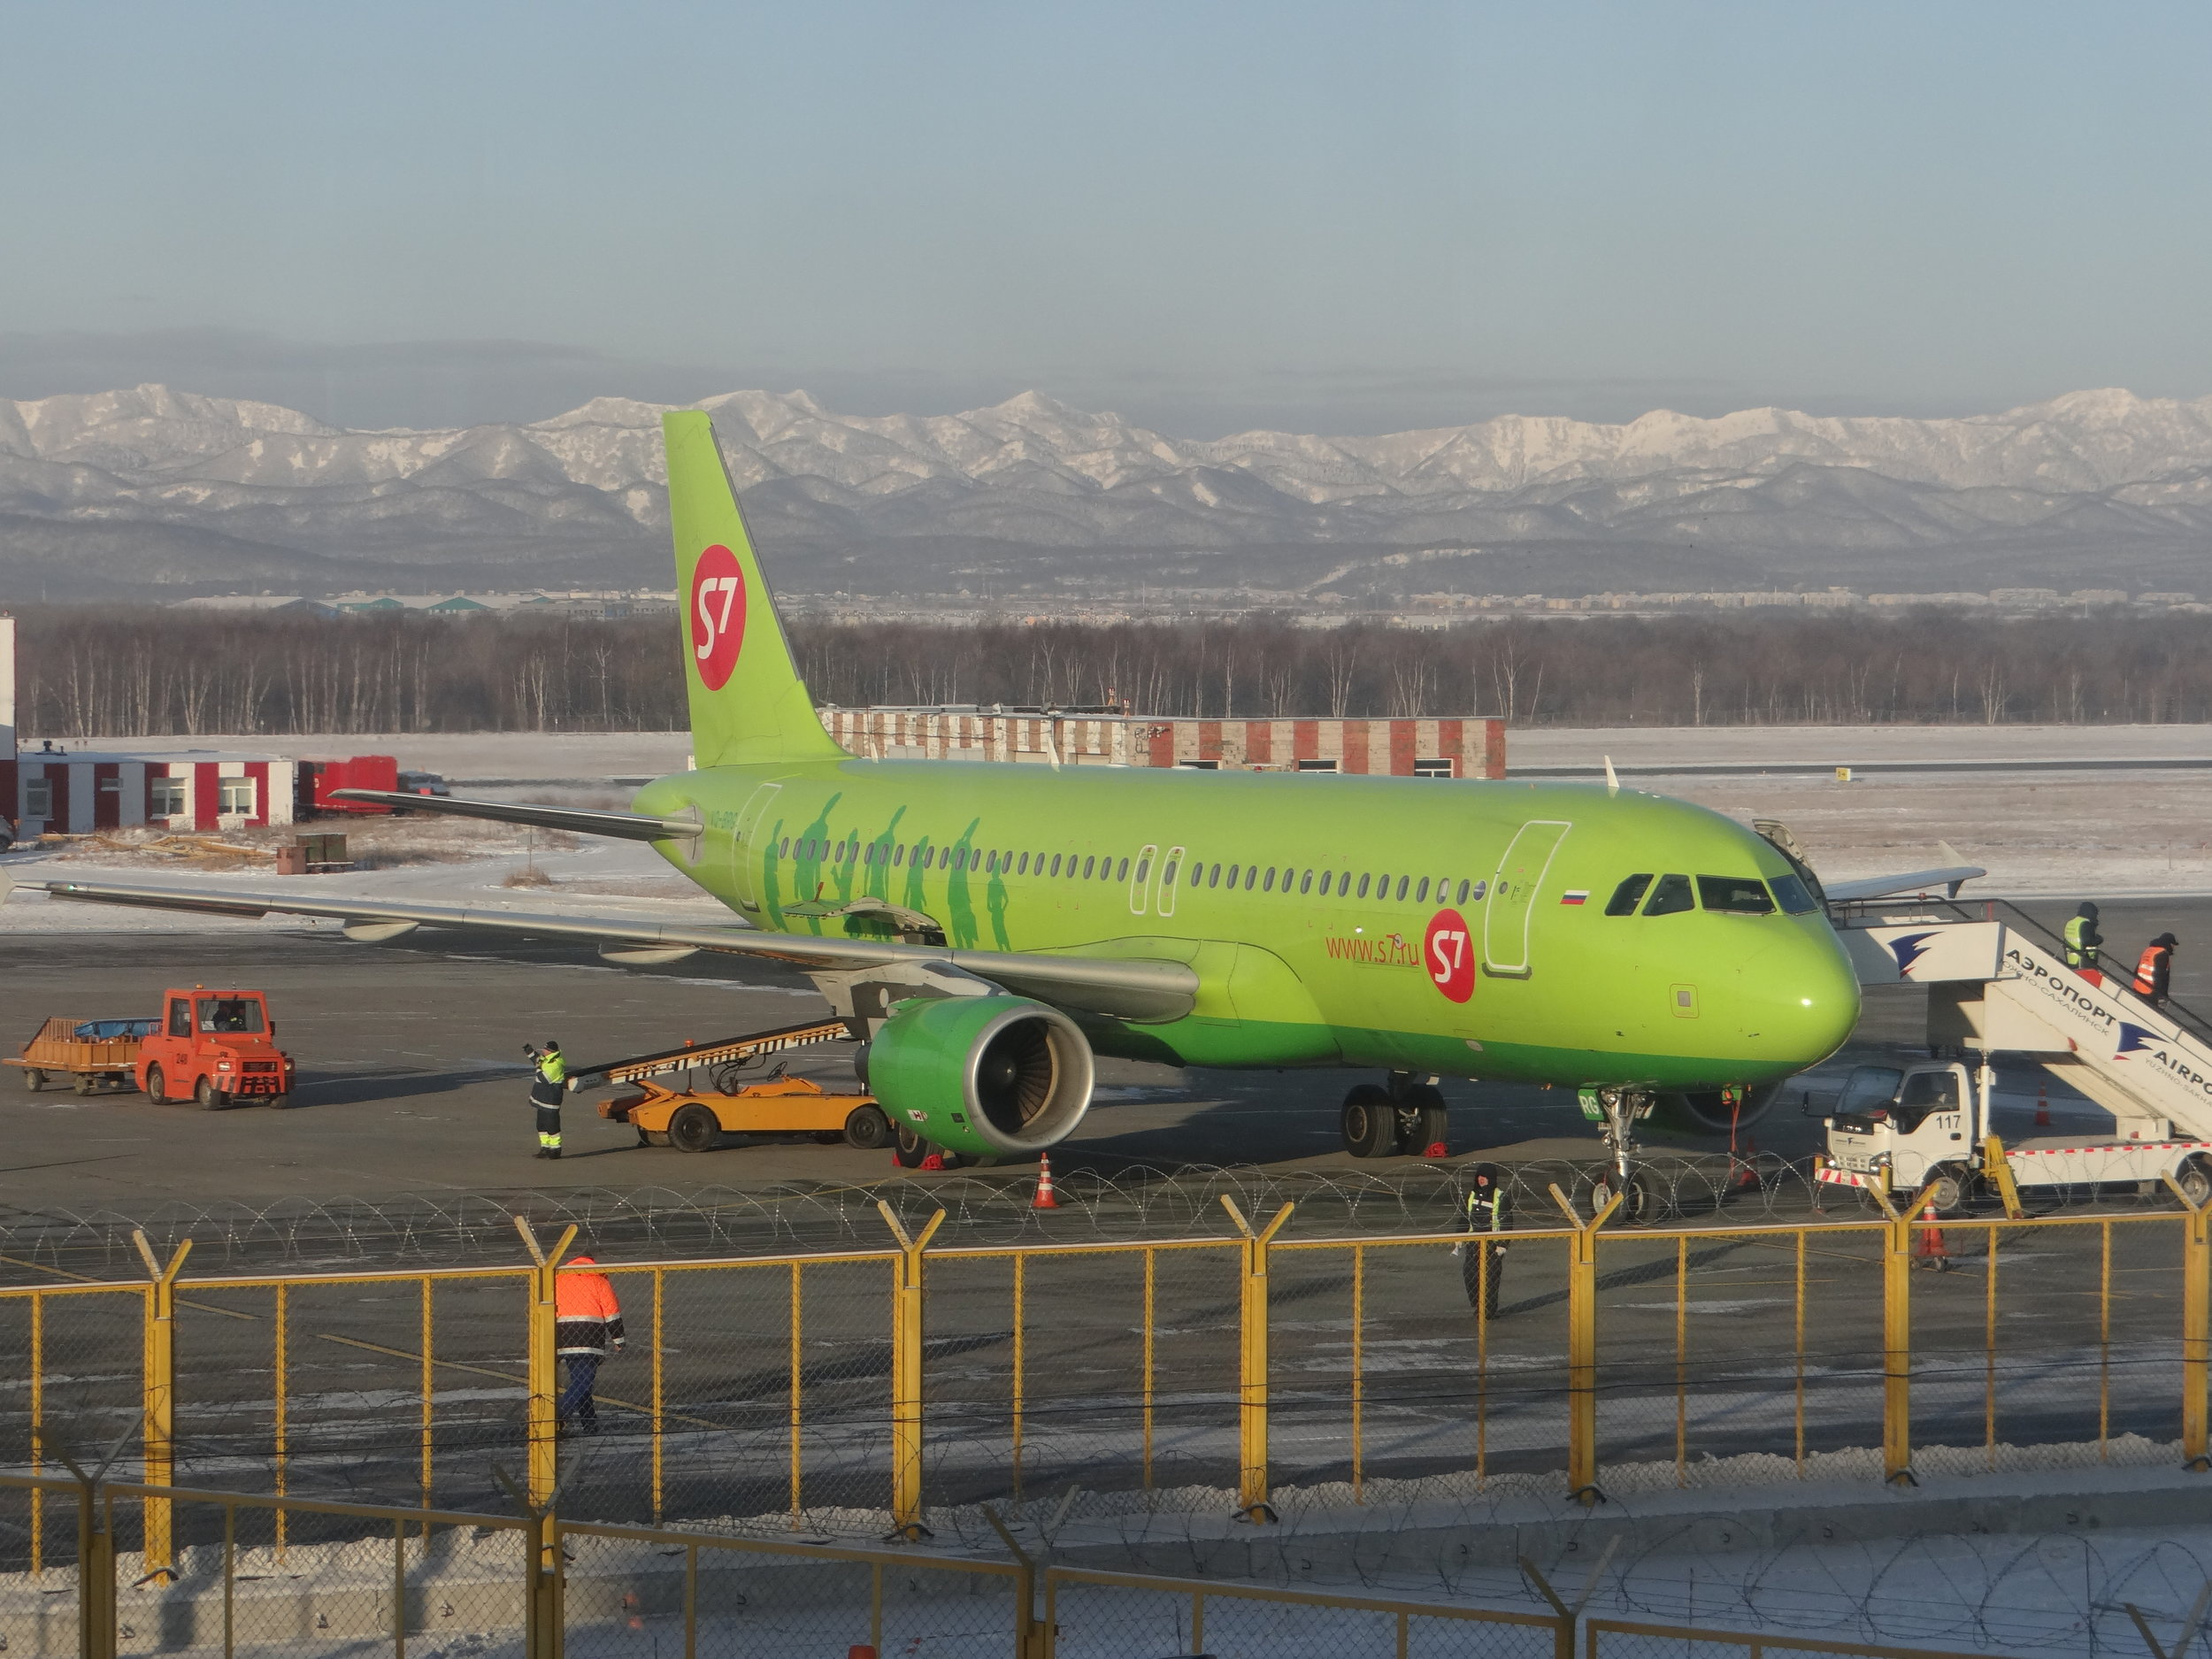 Passengers at Yuzhno-Sakhalinsk can enjoy the majestic landscapes this island has to offer. In the foreground an S7 A320 preparing to depart for Vladivostok, in the mainland